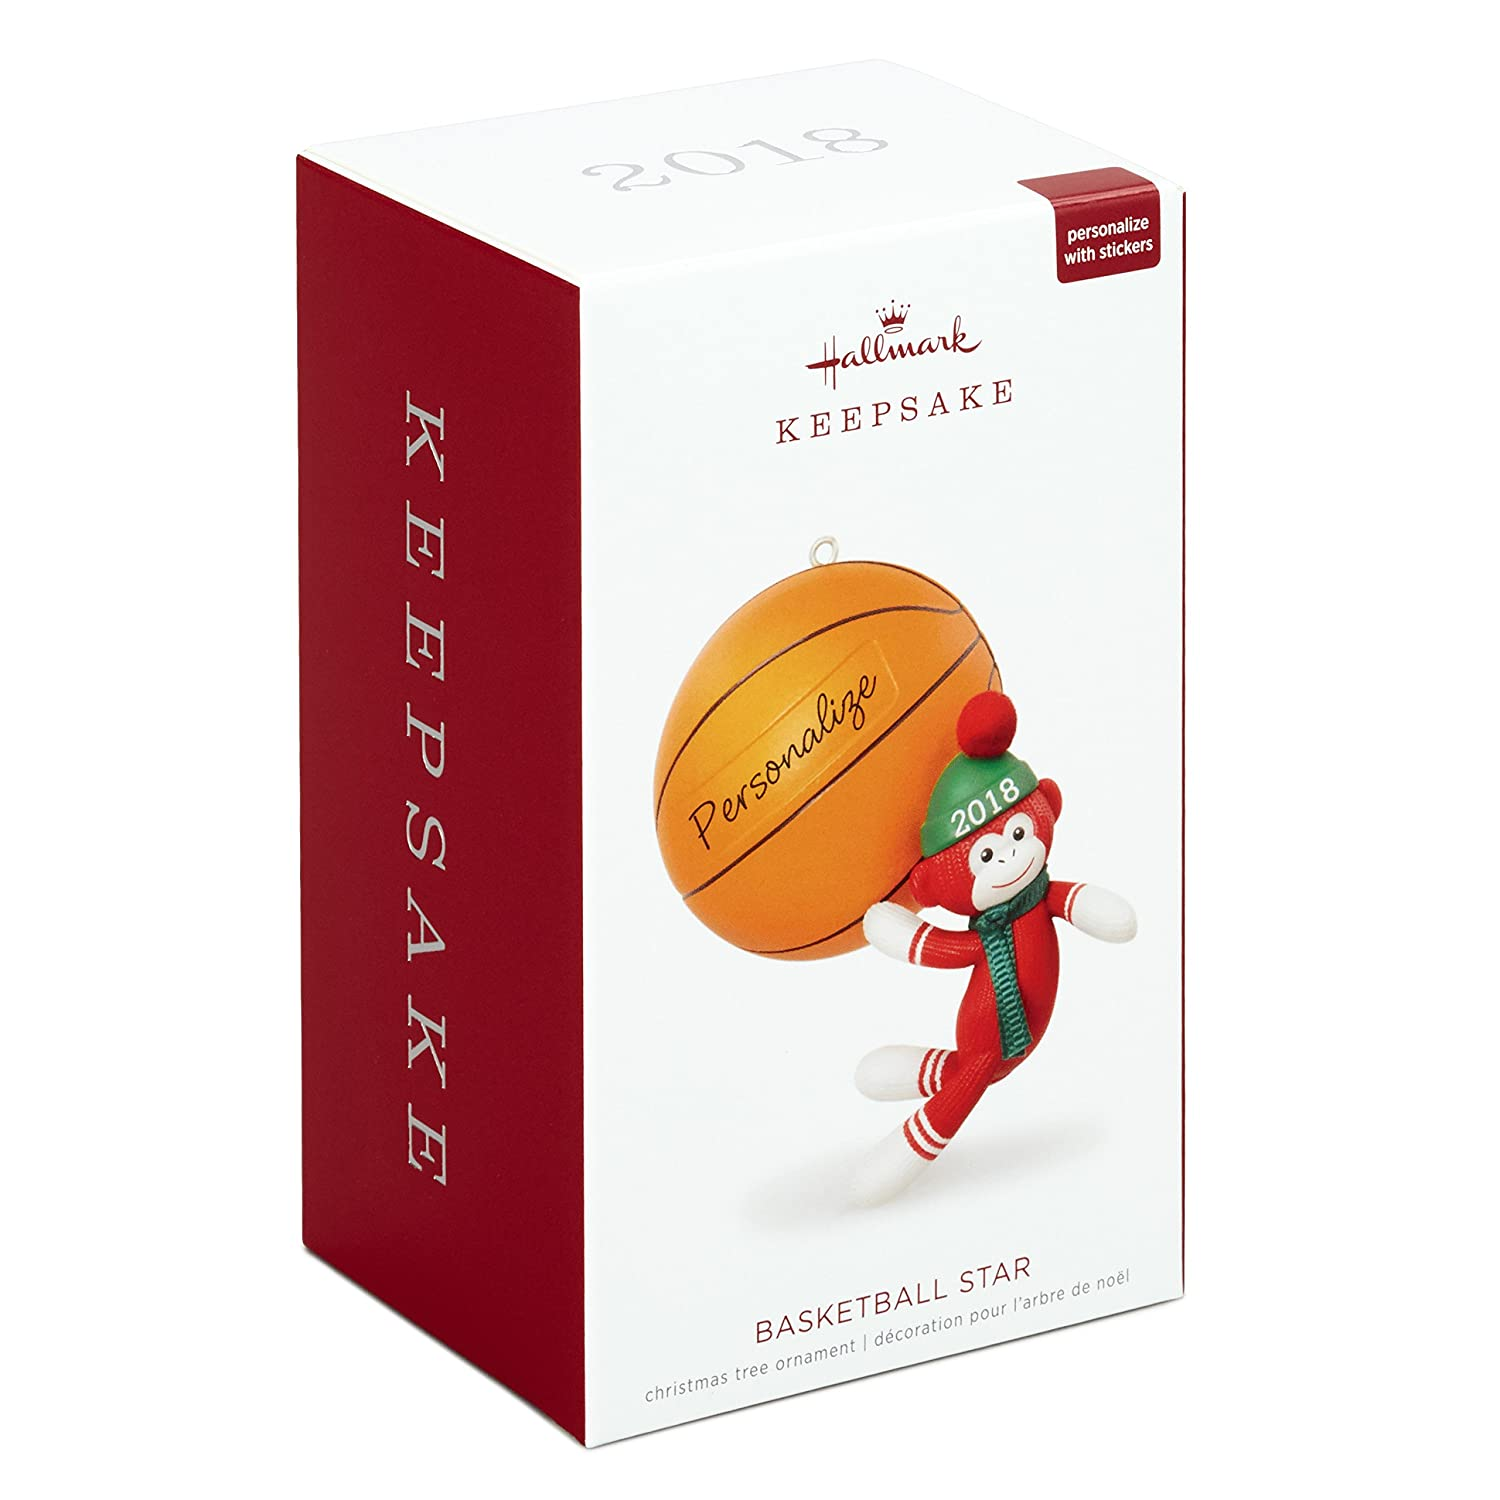 hallmark keepsake personalized christmas ornament year dated basketball star sock monkey home kitchen jpg 1500x1500 basketball